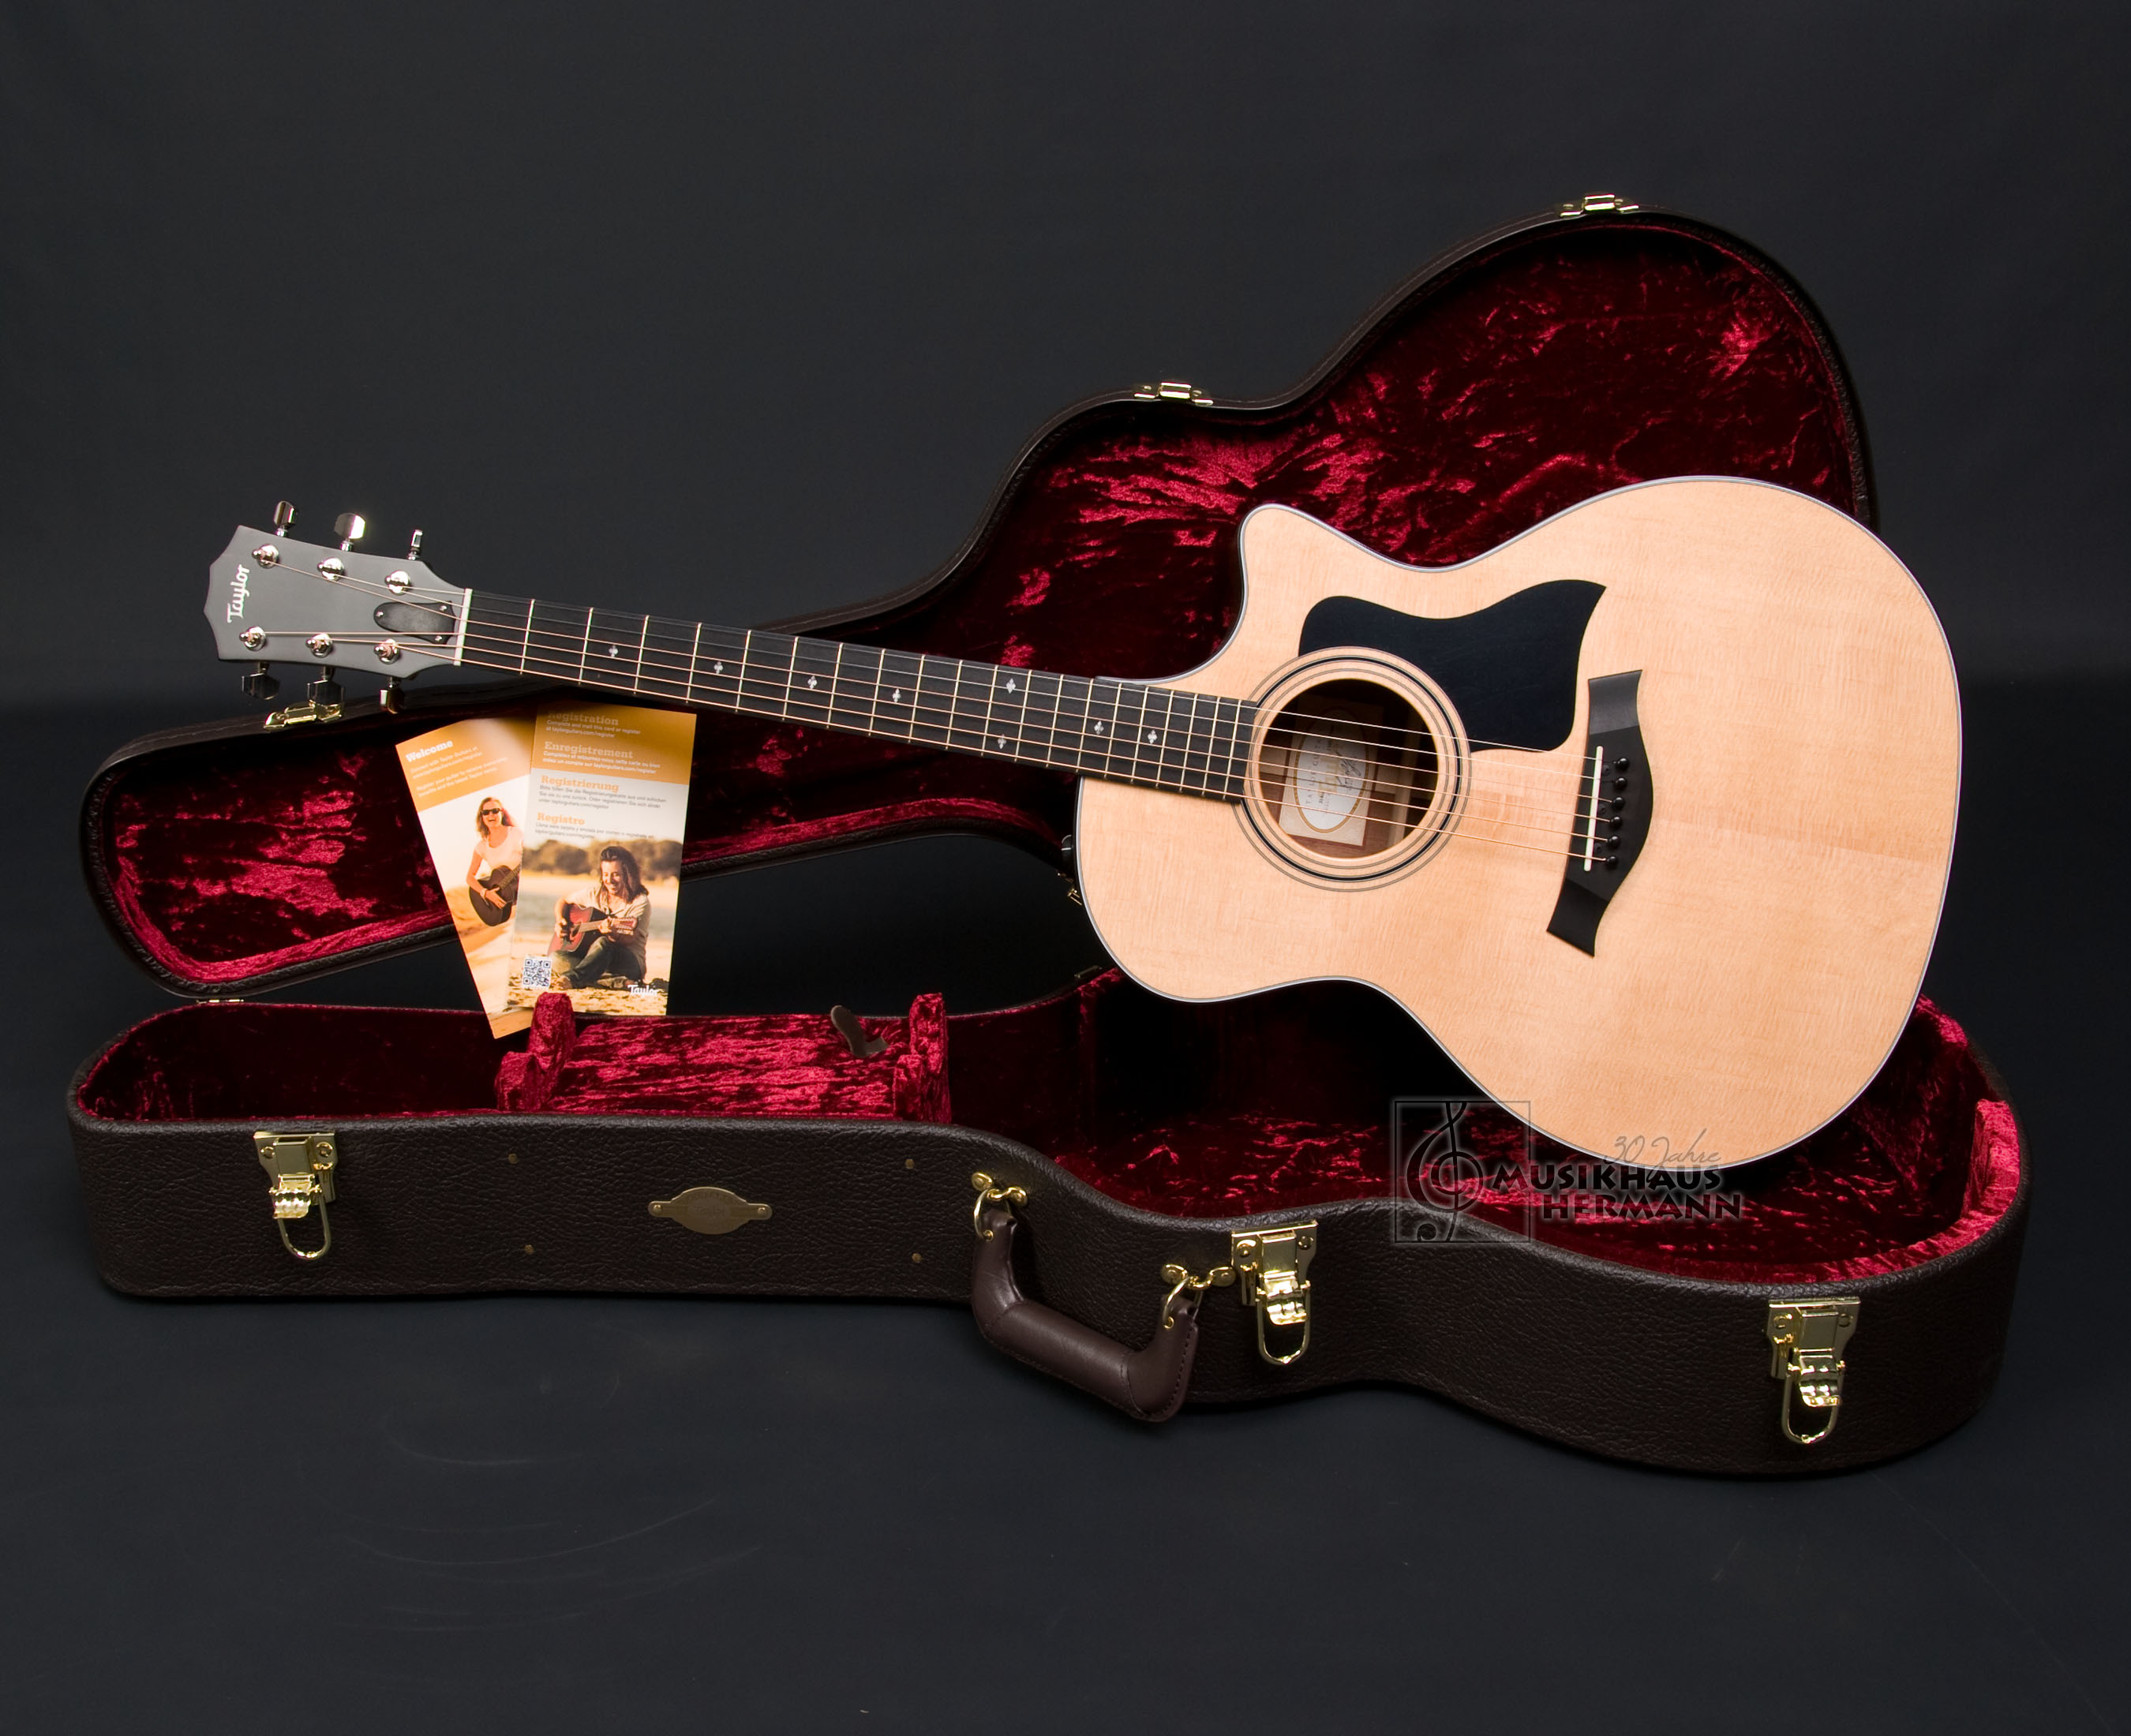 Taylor 314ce musikhaus hermann online shop for Musik hause